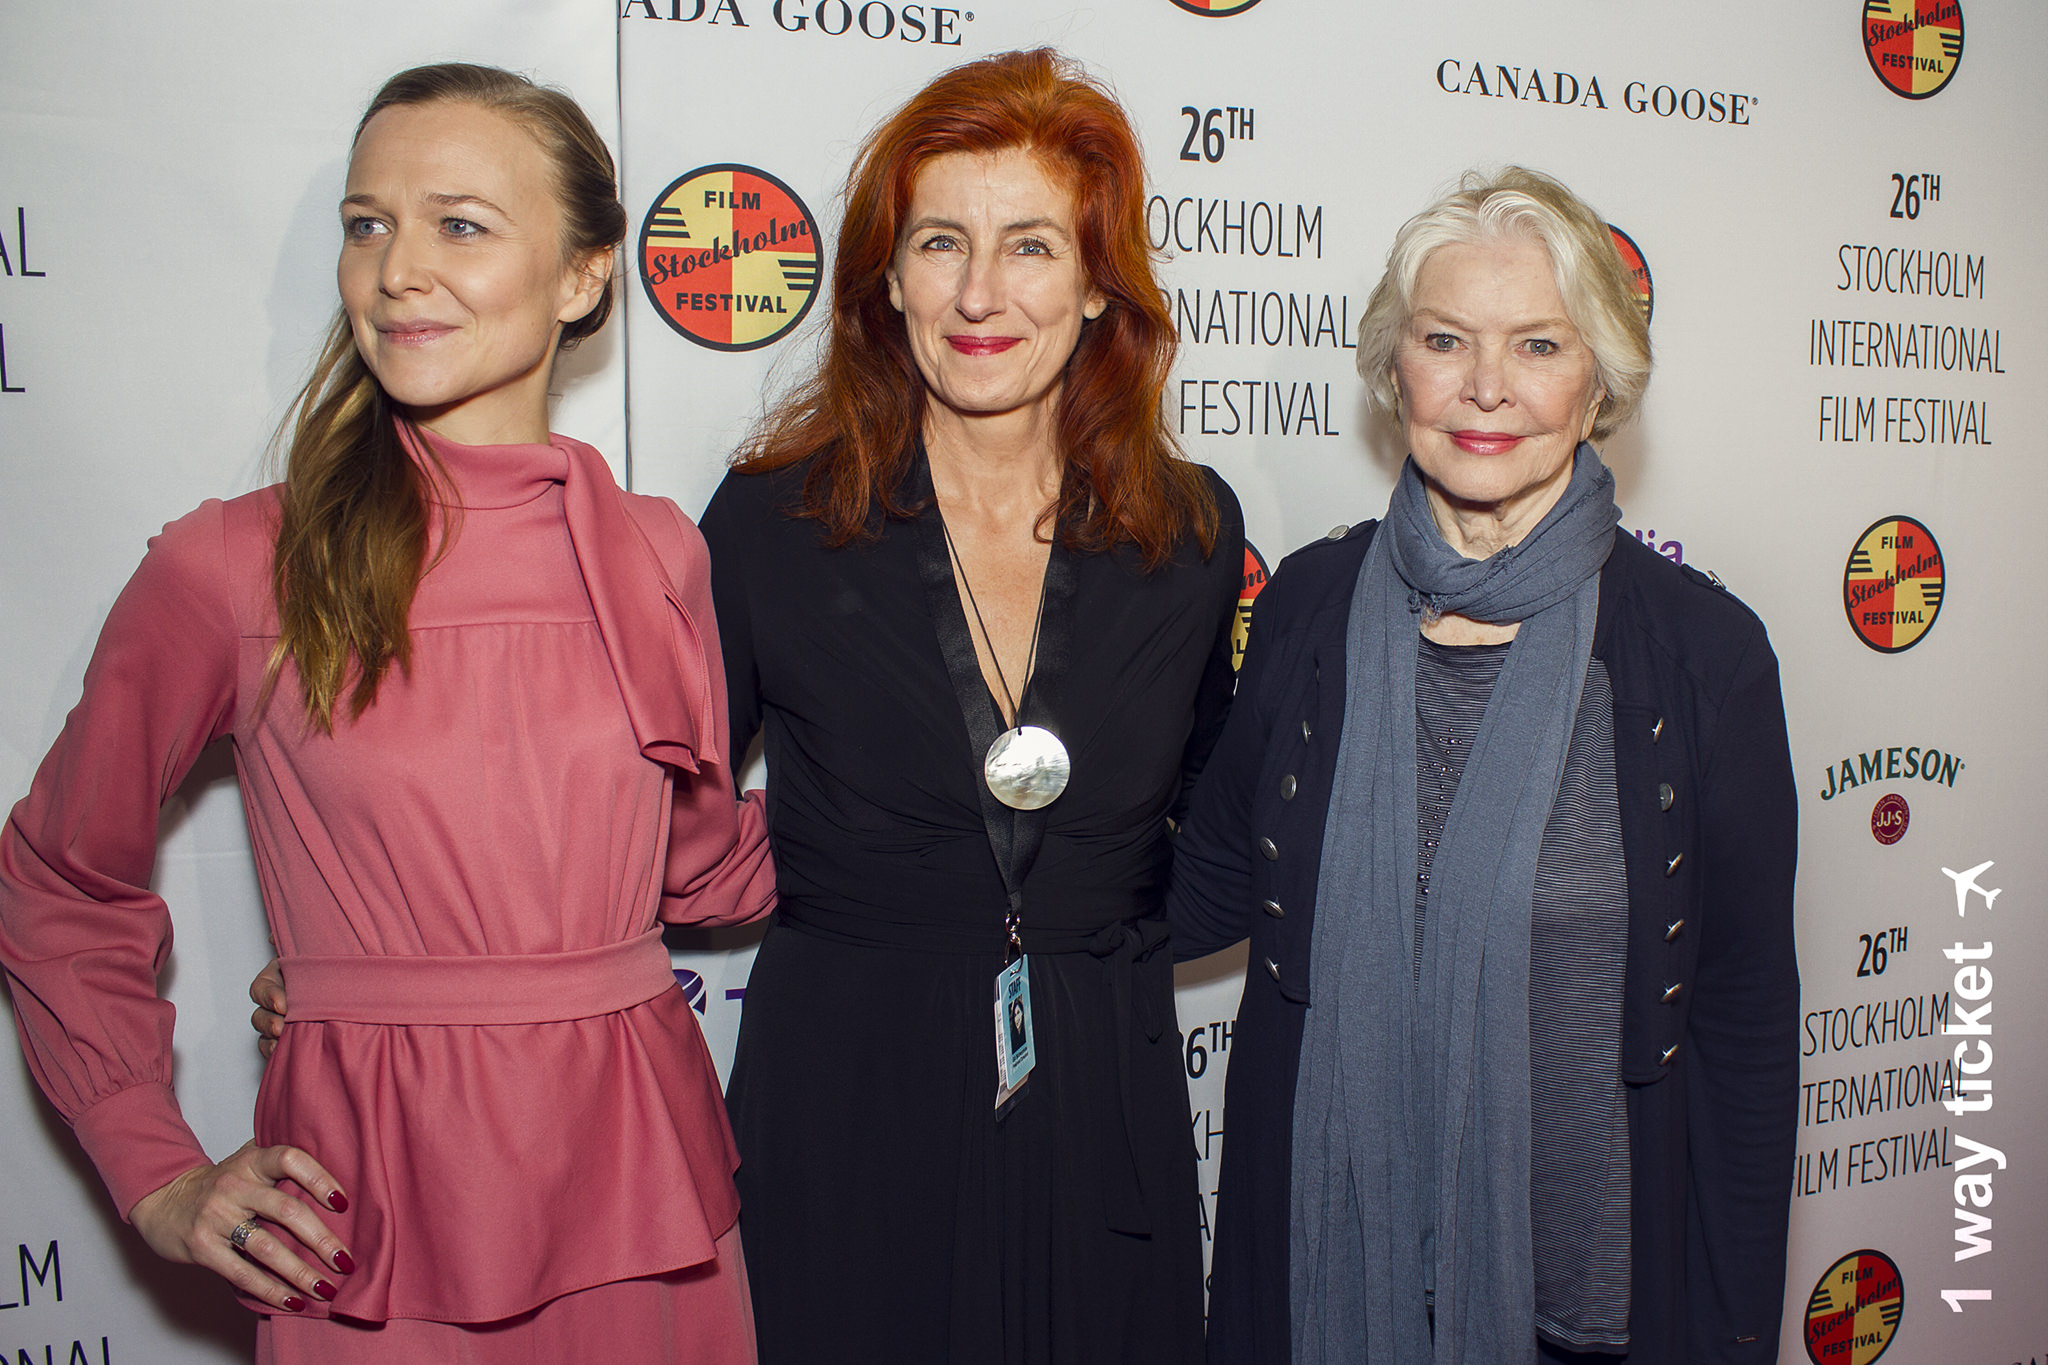 Git Scheynius with Ellen Burstyn who received the Life Time Achievement Award at the 26th Stockholm InternationalFilm Festival